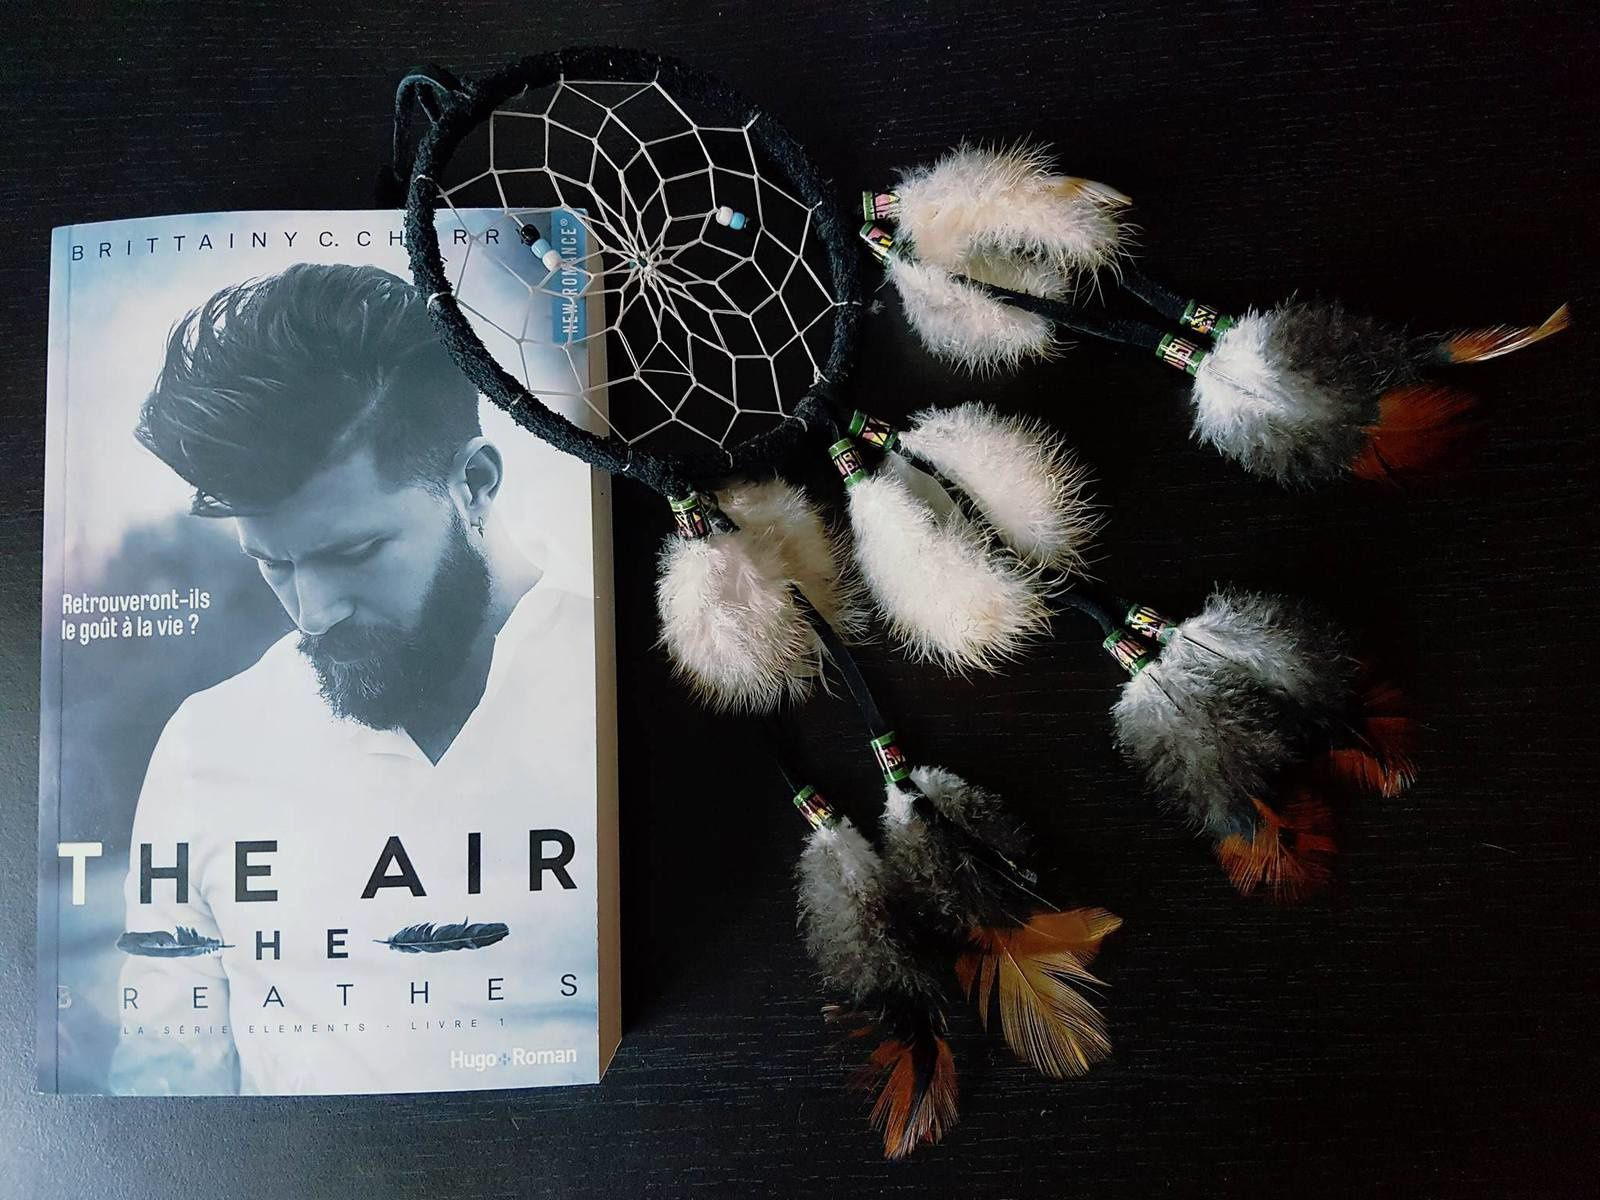 Elements, tome 1 : the air he breathes - Brittainy Cherry